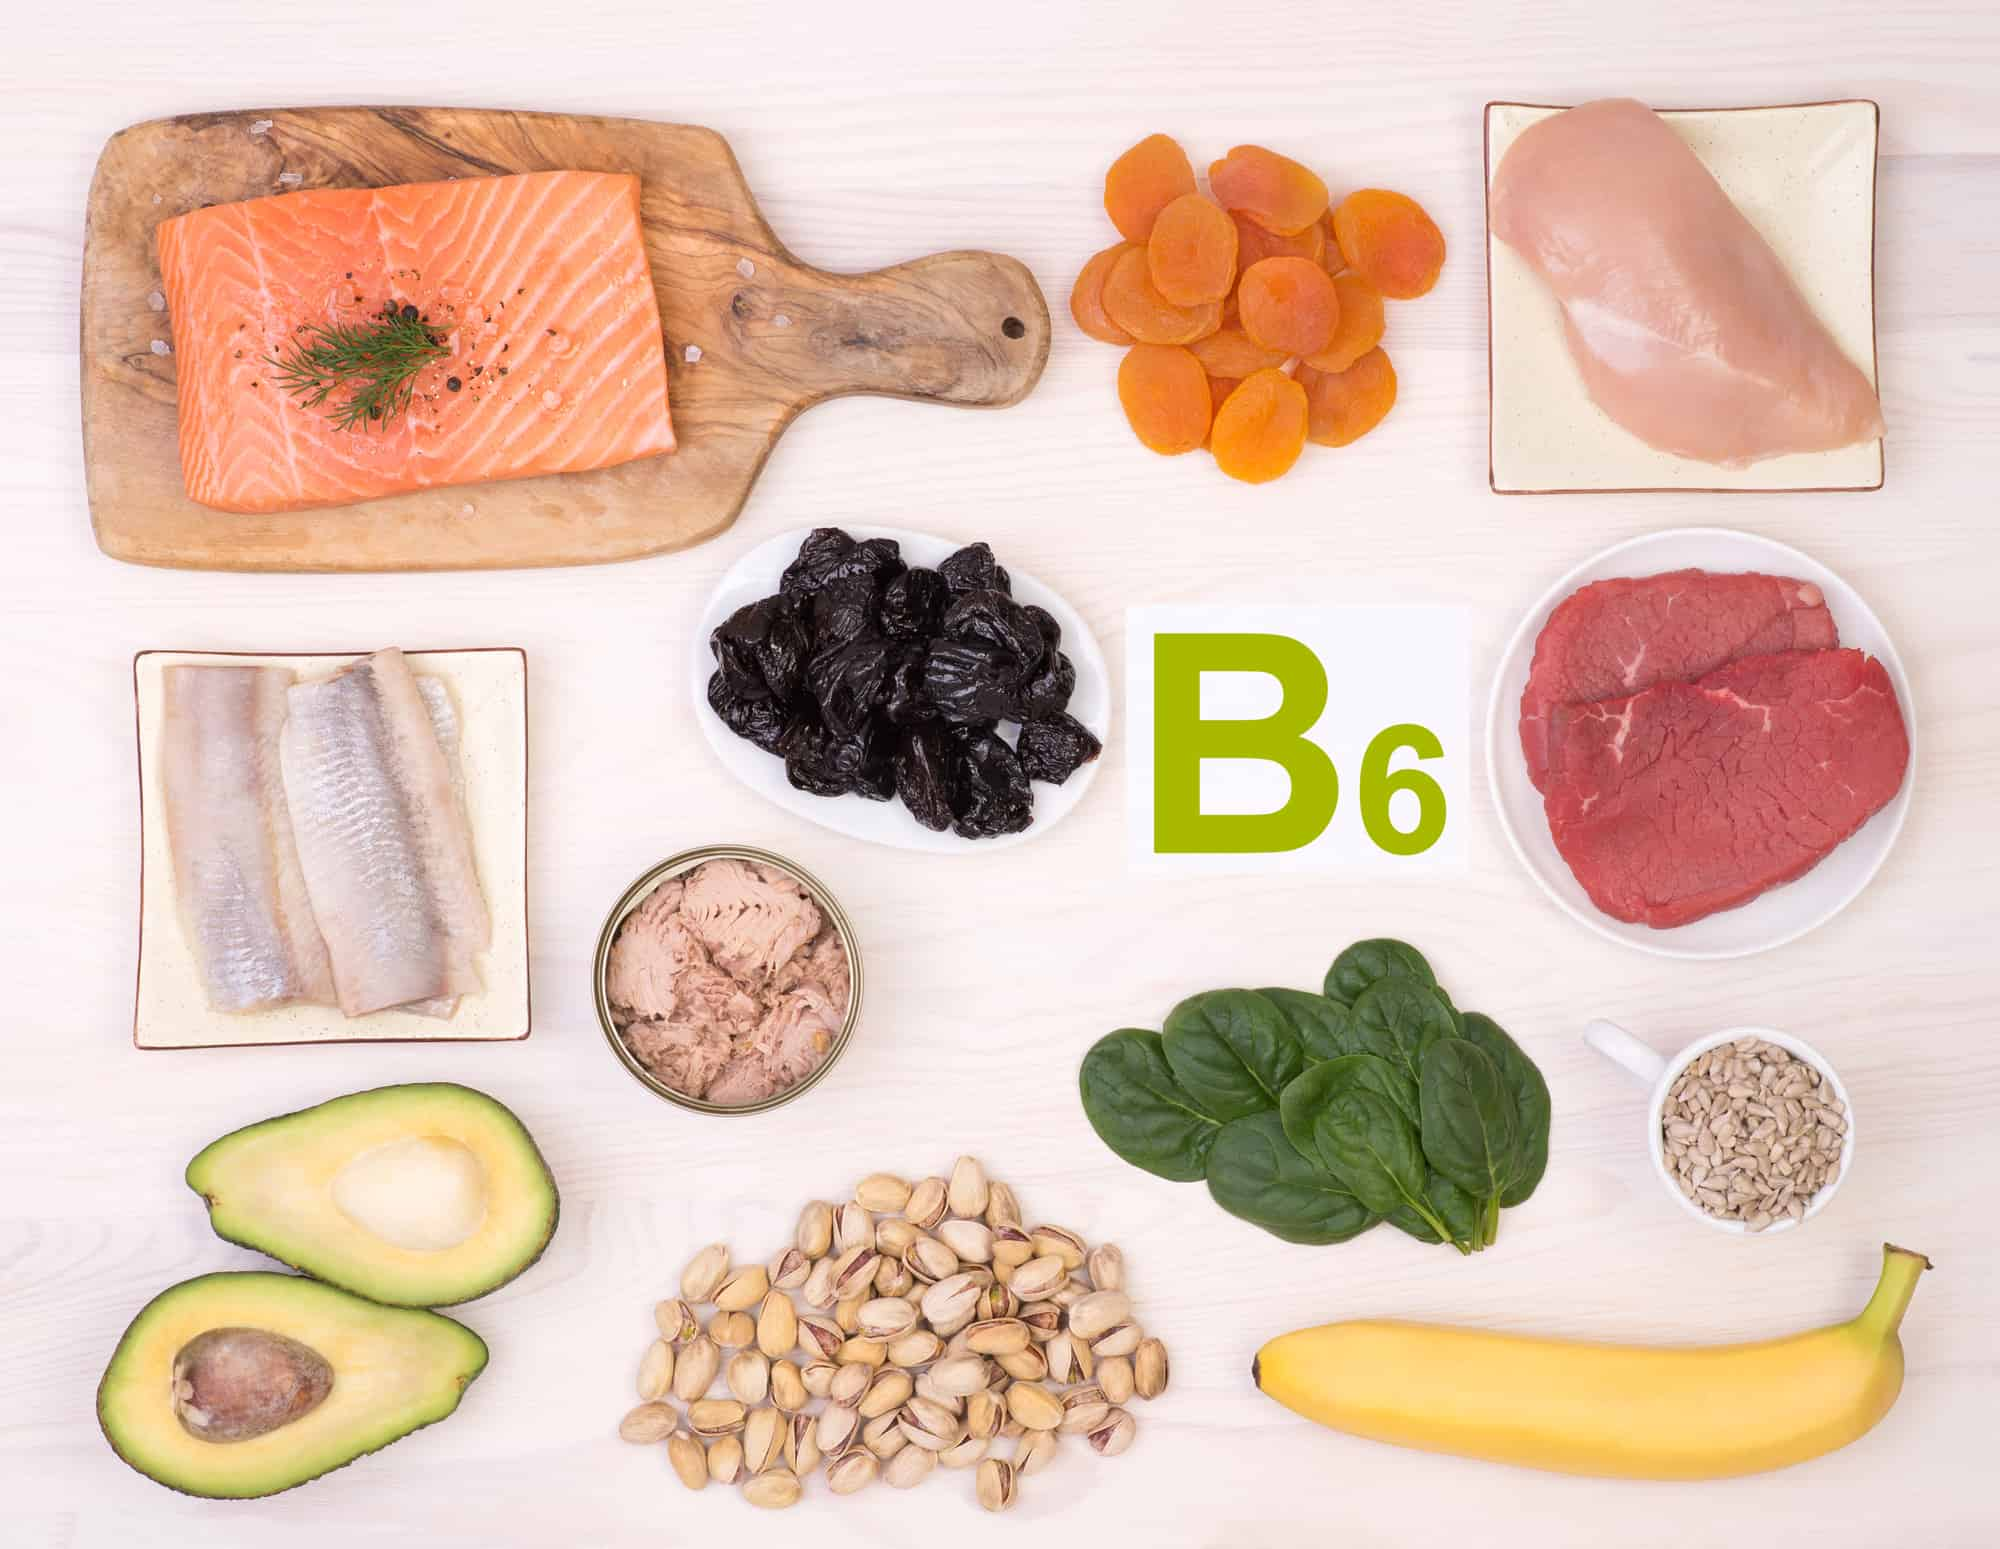 Foods containing the most B6 vitamin